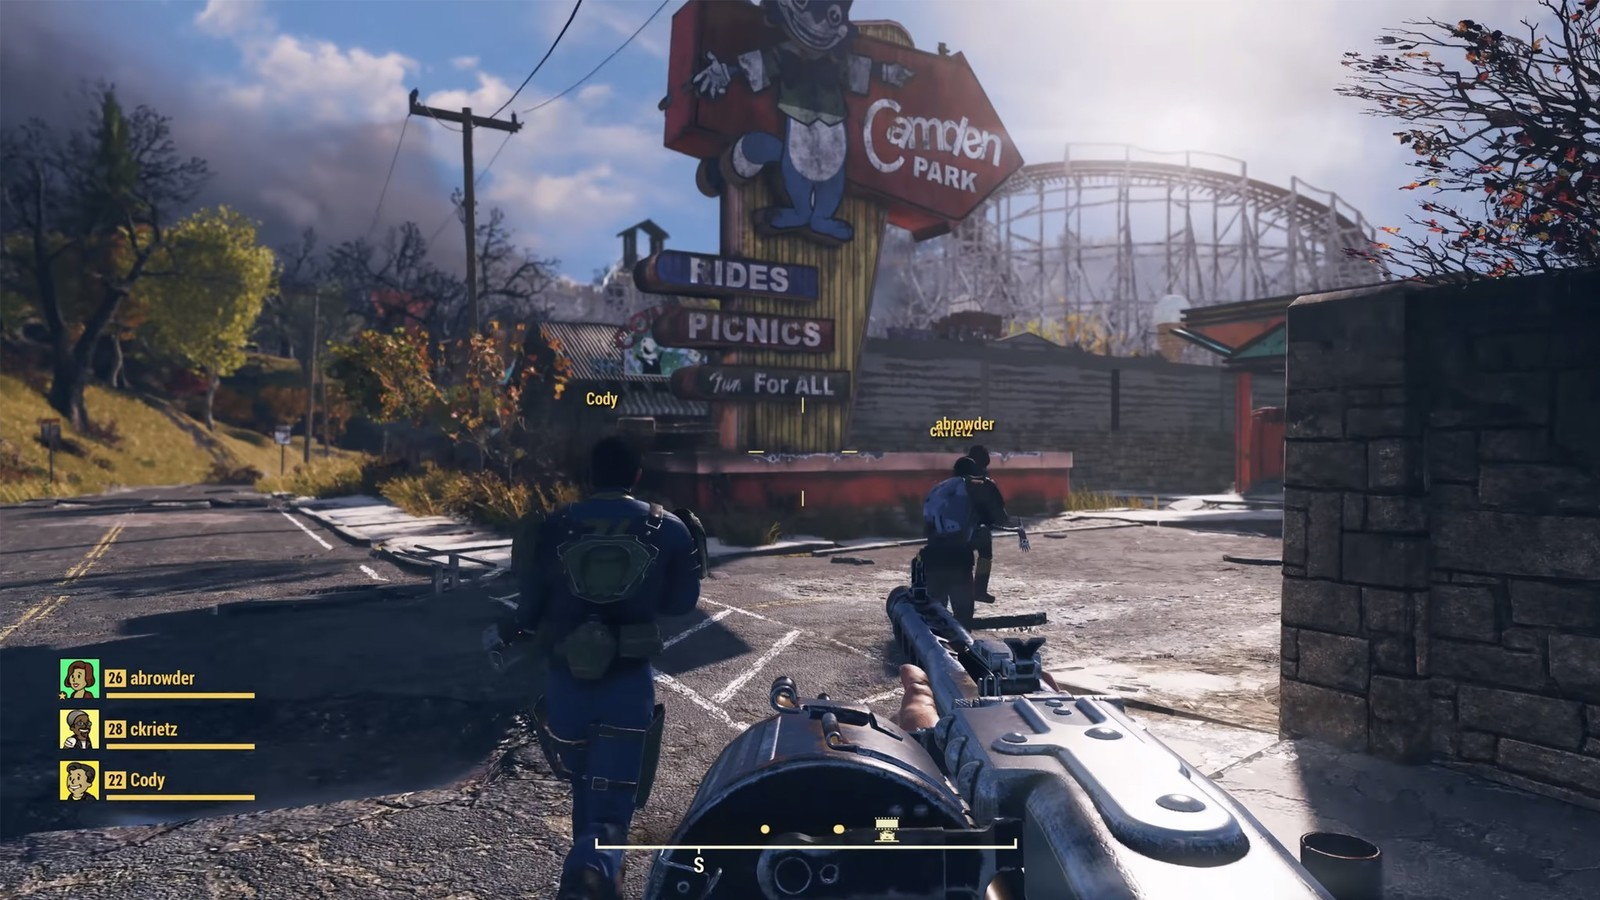 Fallout 76 Pre-Order To Get The Fallout Classic Collection On PC For Free